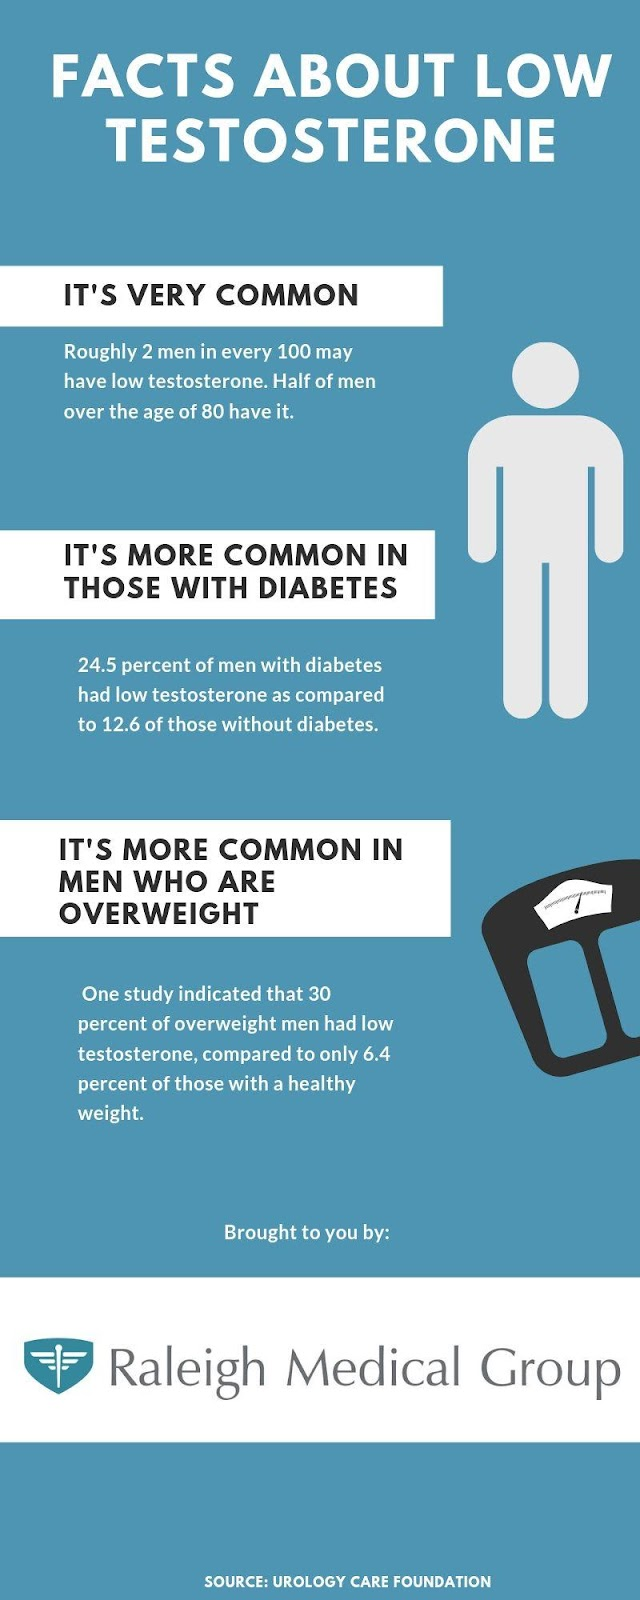 does low testosterone cause prostate problems